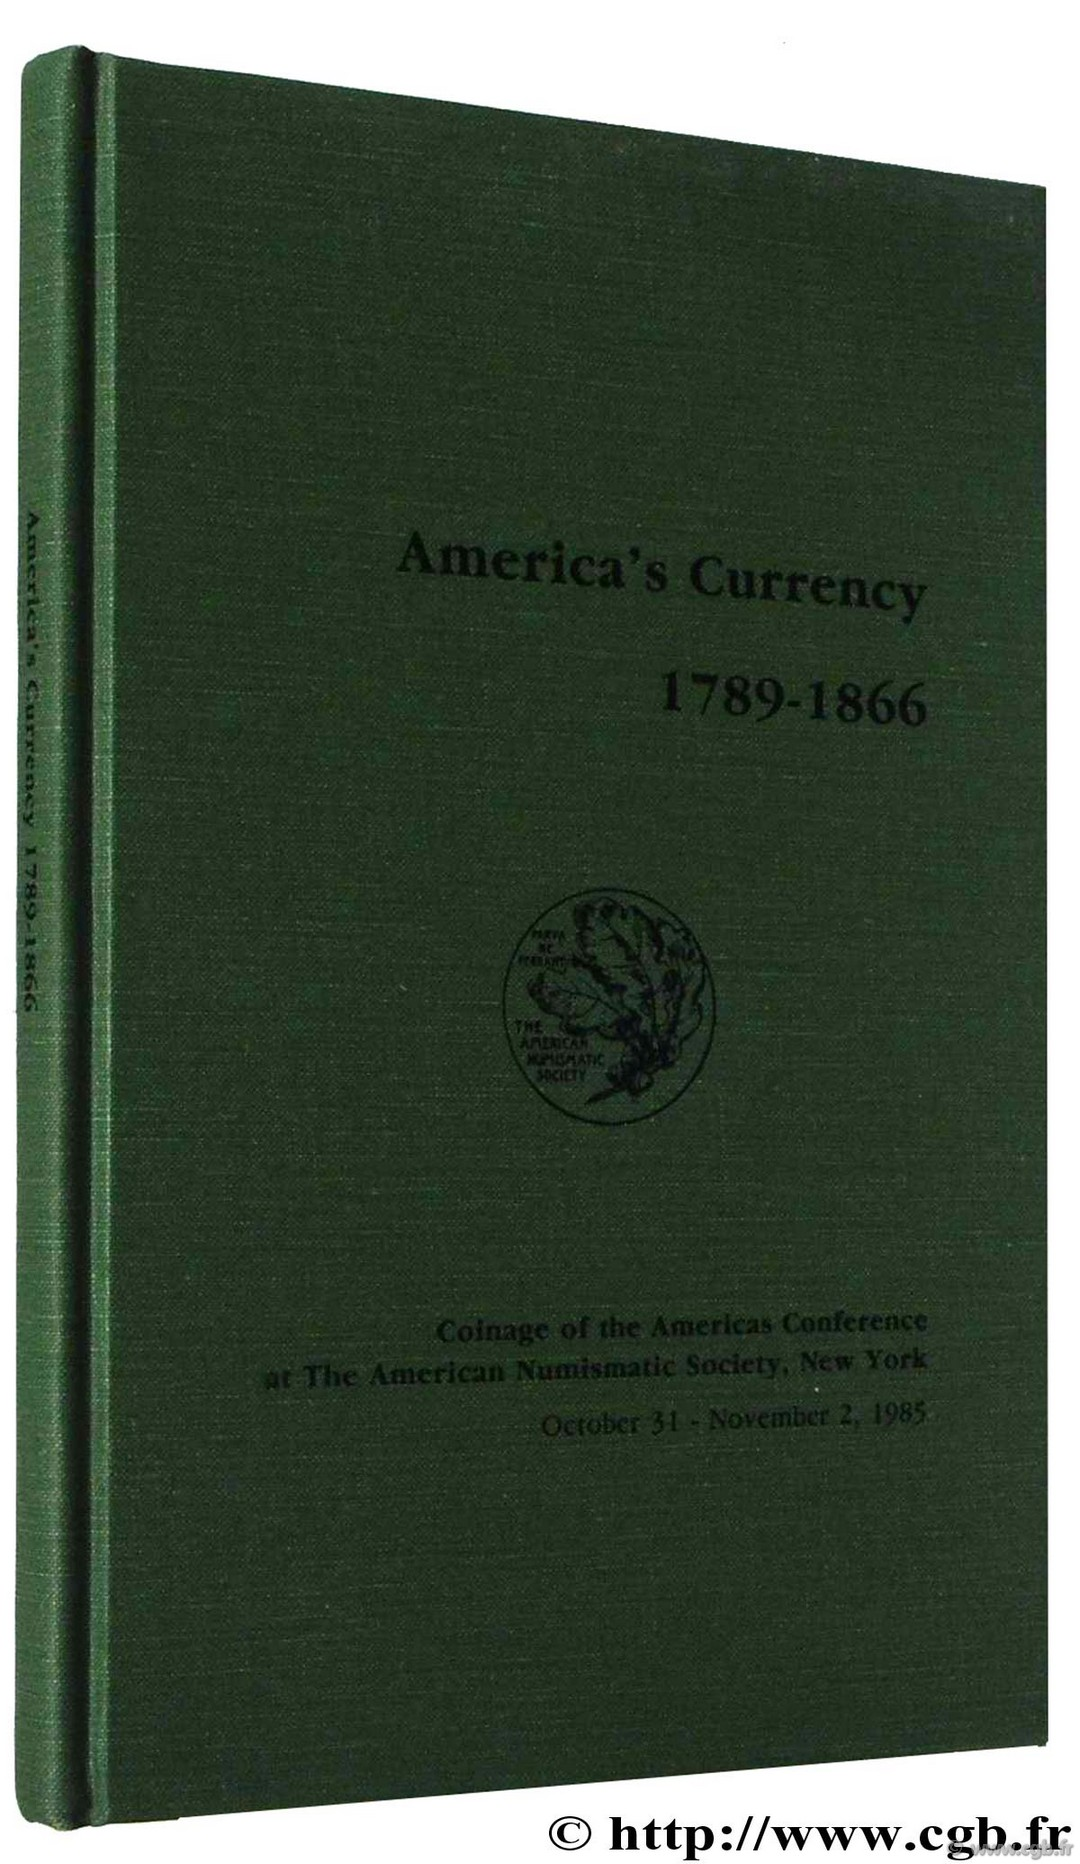 America s currency 1789-1866, coinage of the americas conférence at the American Numismatic Society, New York October 31 - November 2 1985